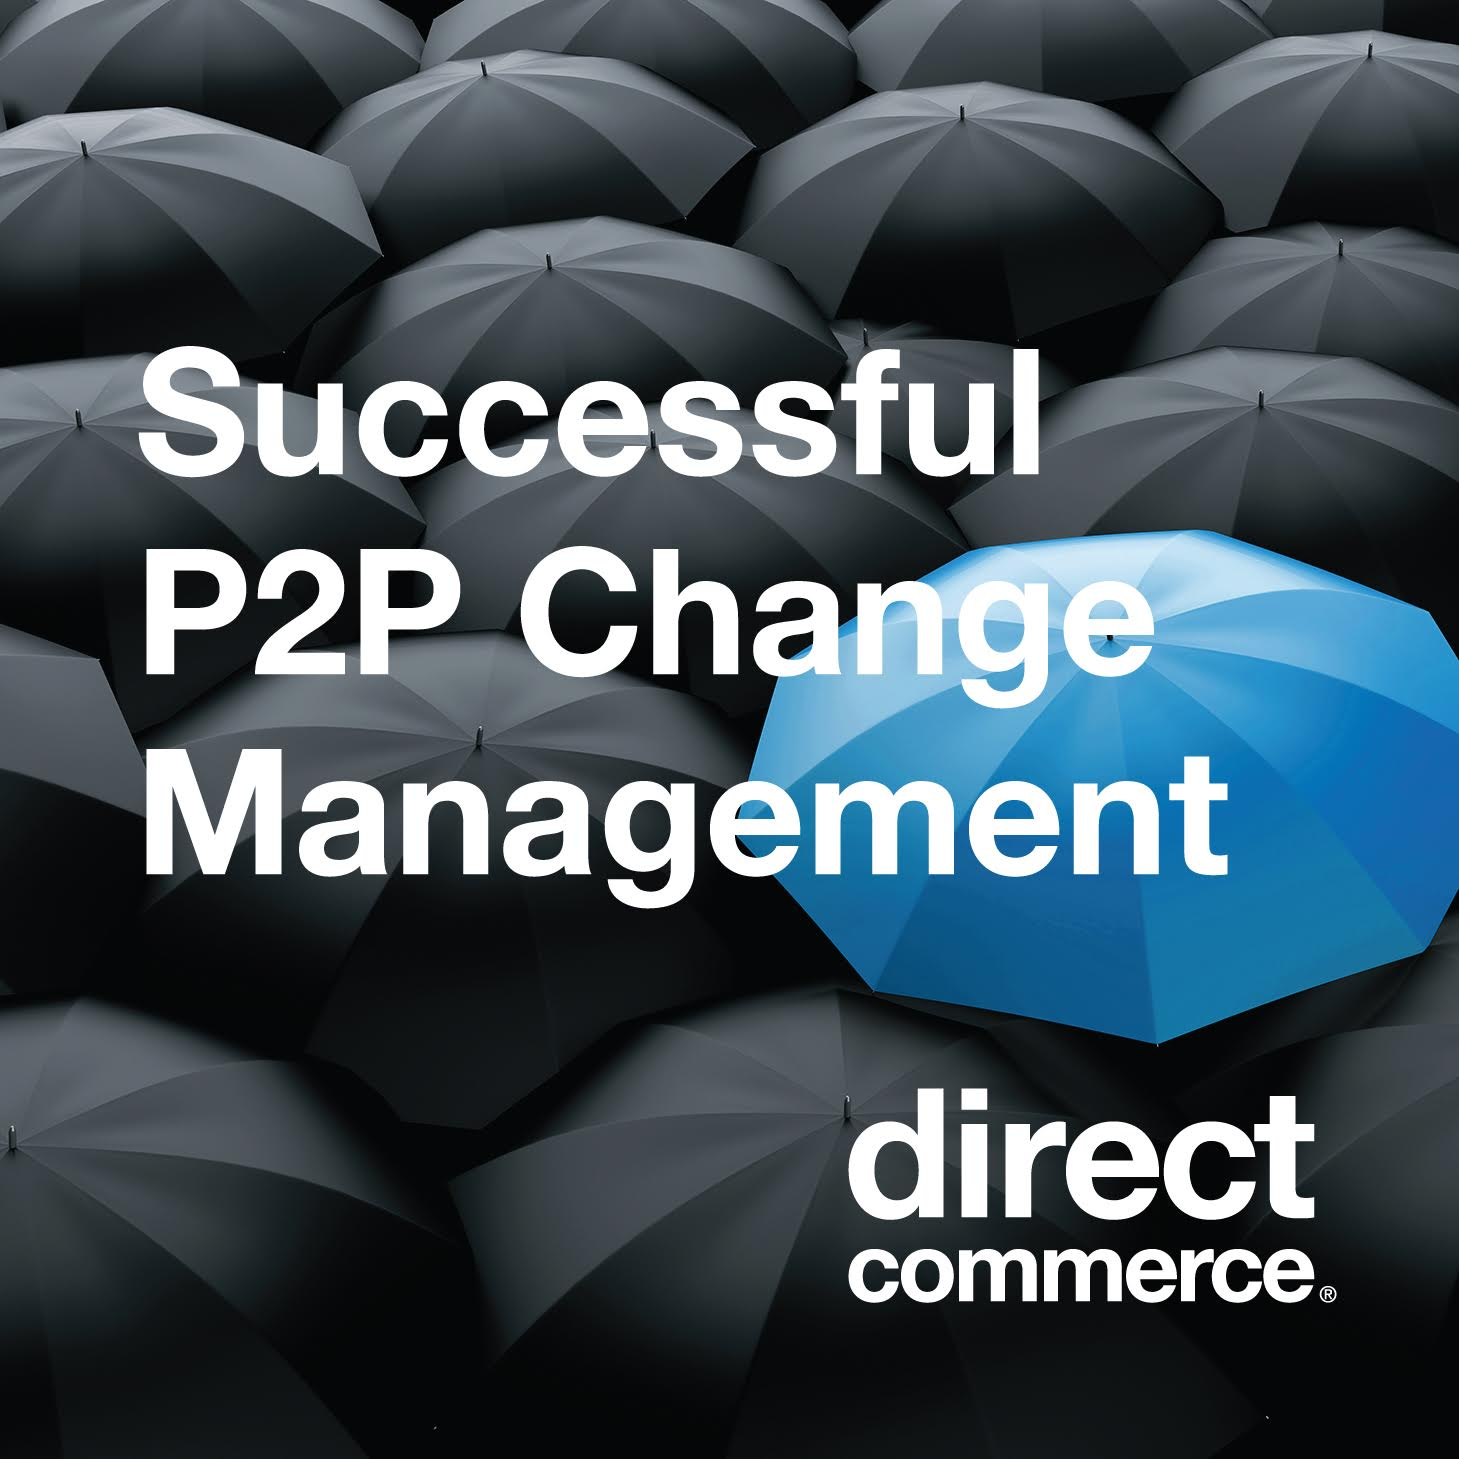 Successful P2P Change Management